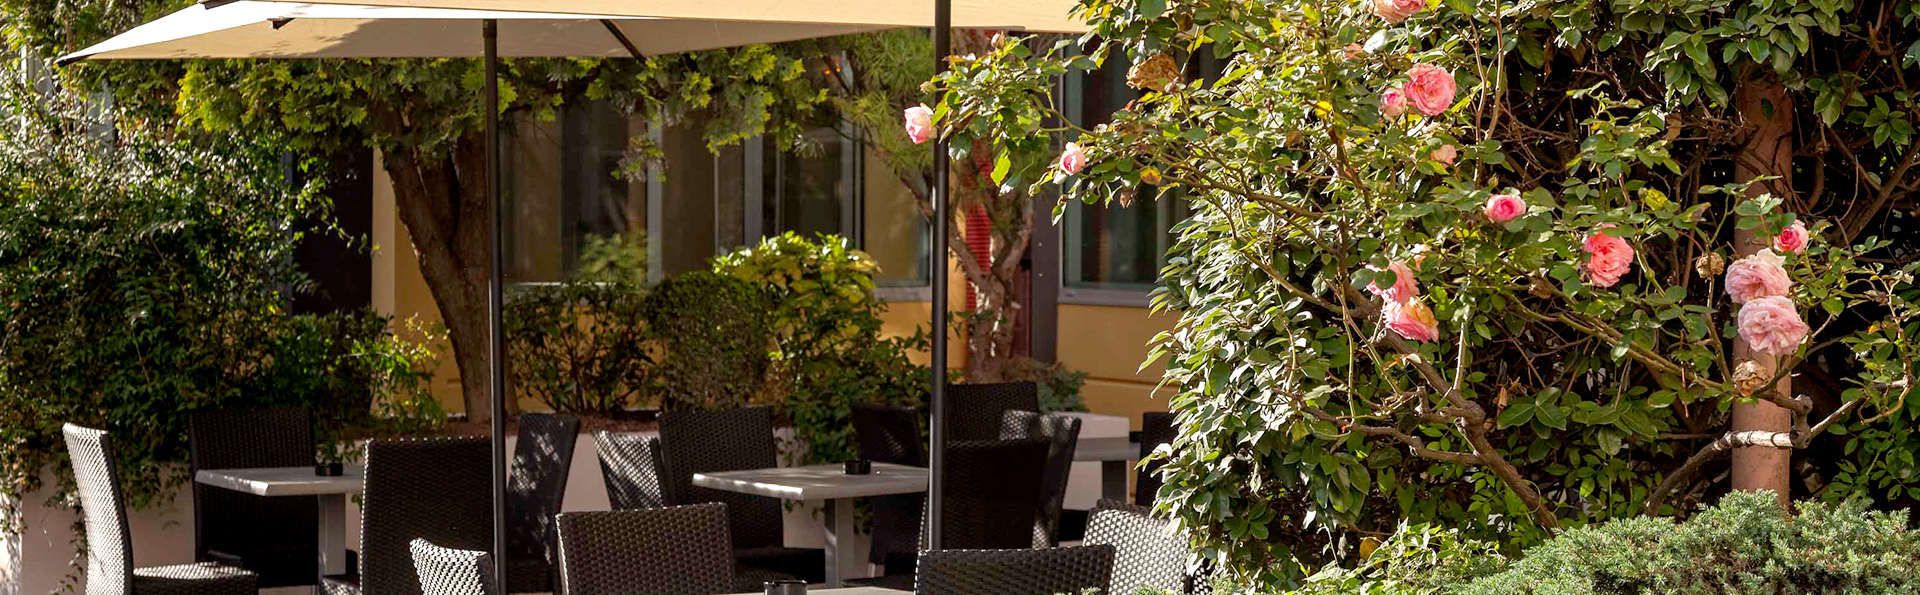 Hôtel Paradis - Edit_Terrace.jpg